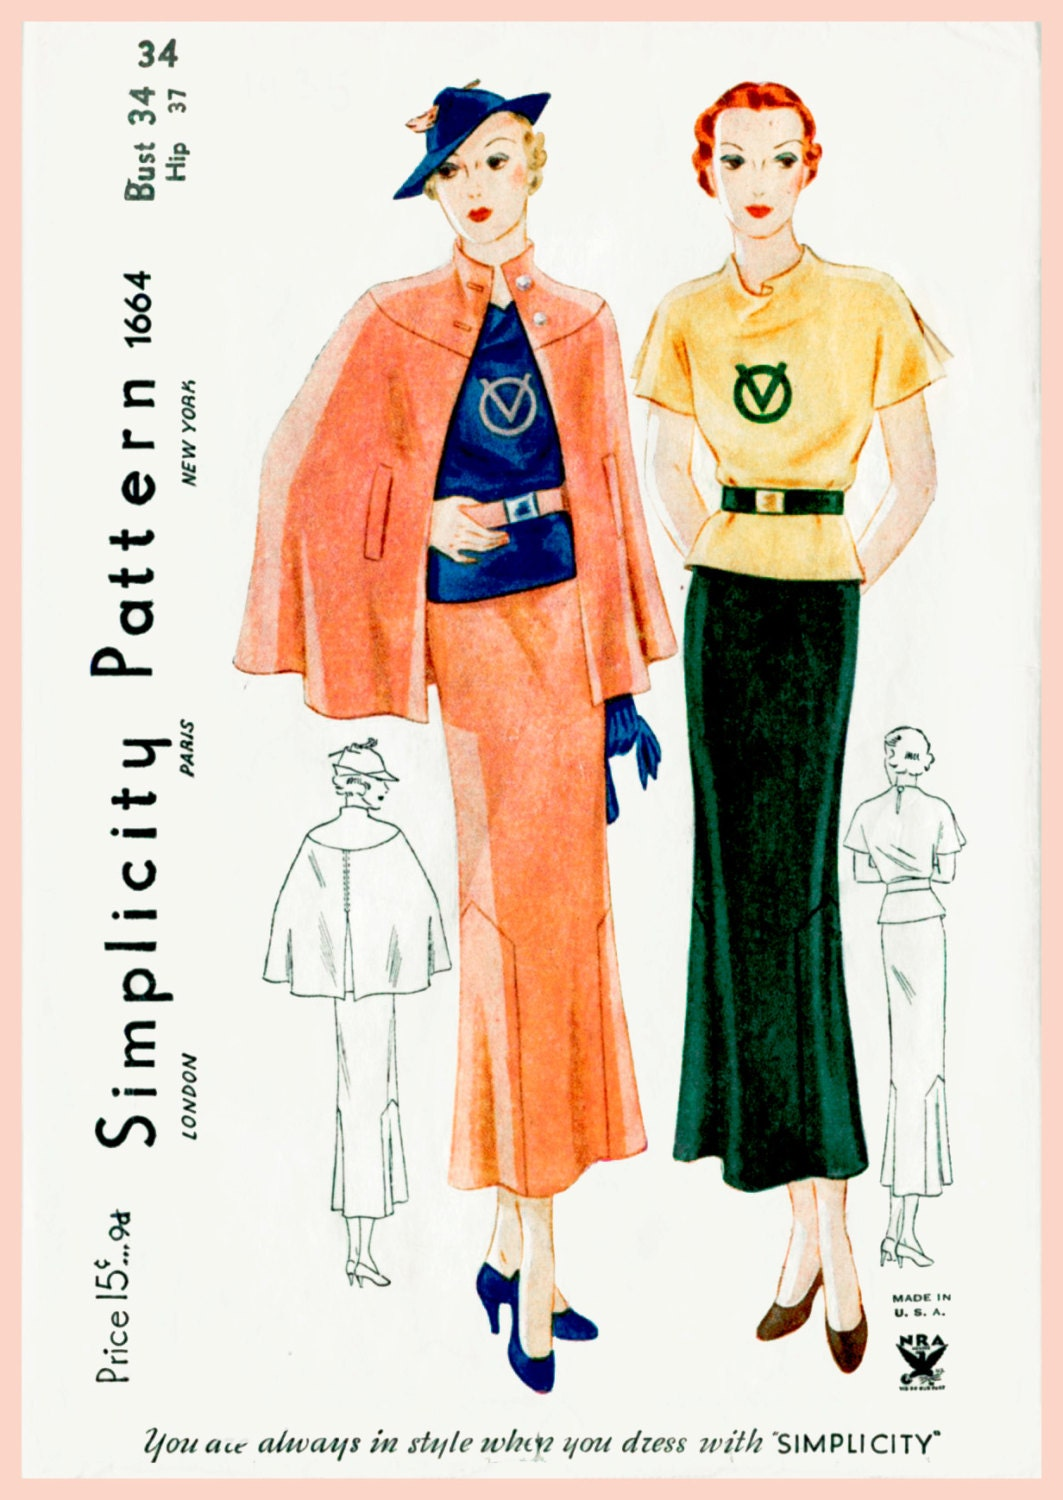 Vintage sewing patterns reproductions choice image craft 1930s dress pattern skirt blouse cape vintage sewing pattern 1930s dress pattern skirt blouse cape vintage jeuxipadfo Choice Image